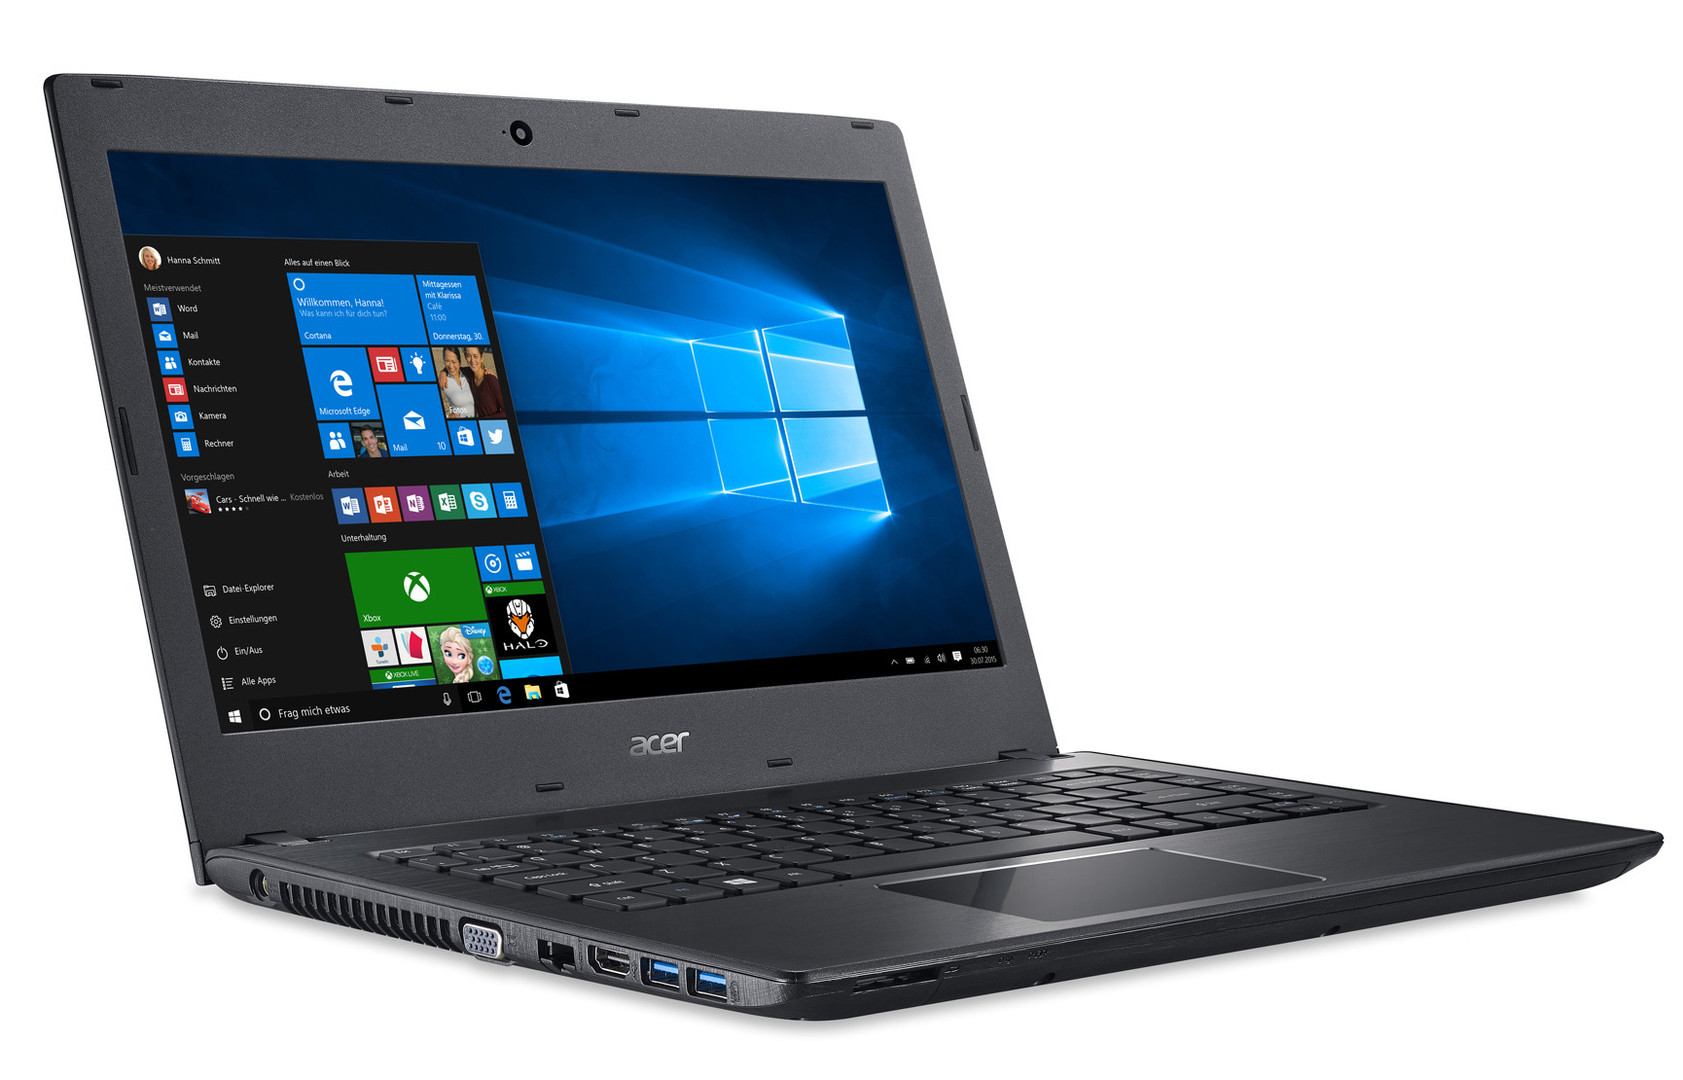 Acer TravelMate P246M-MG Intel Chipset Download Drivers